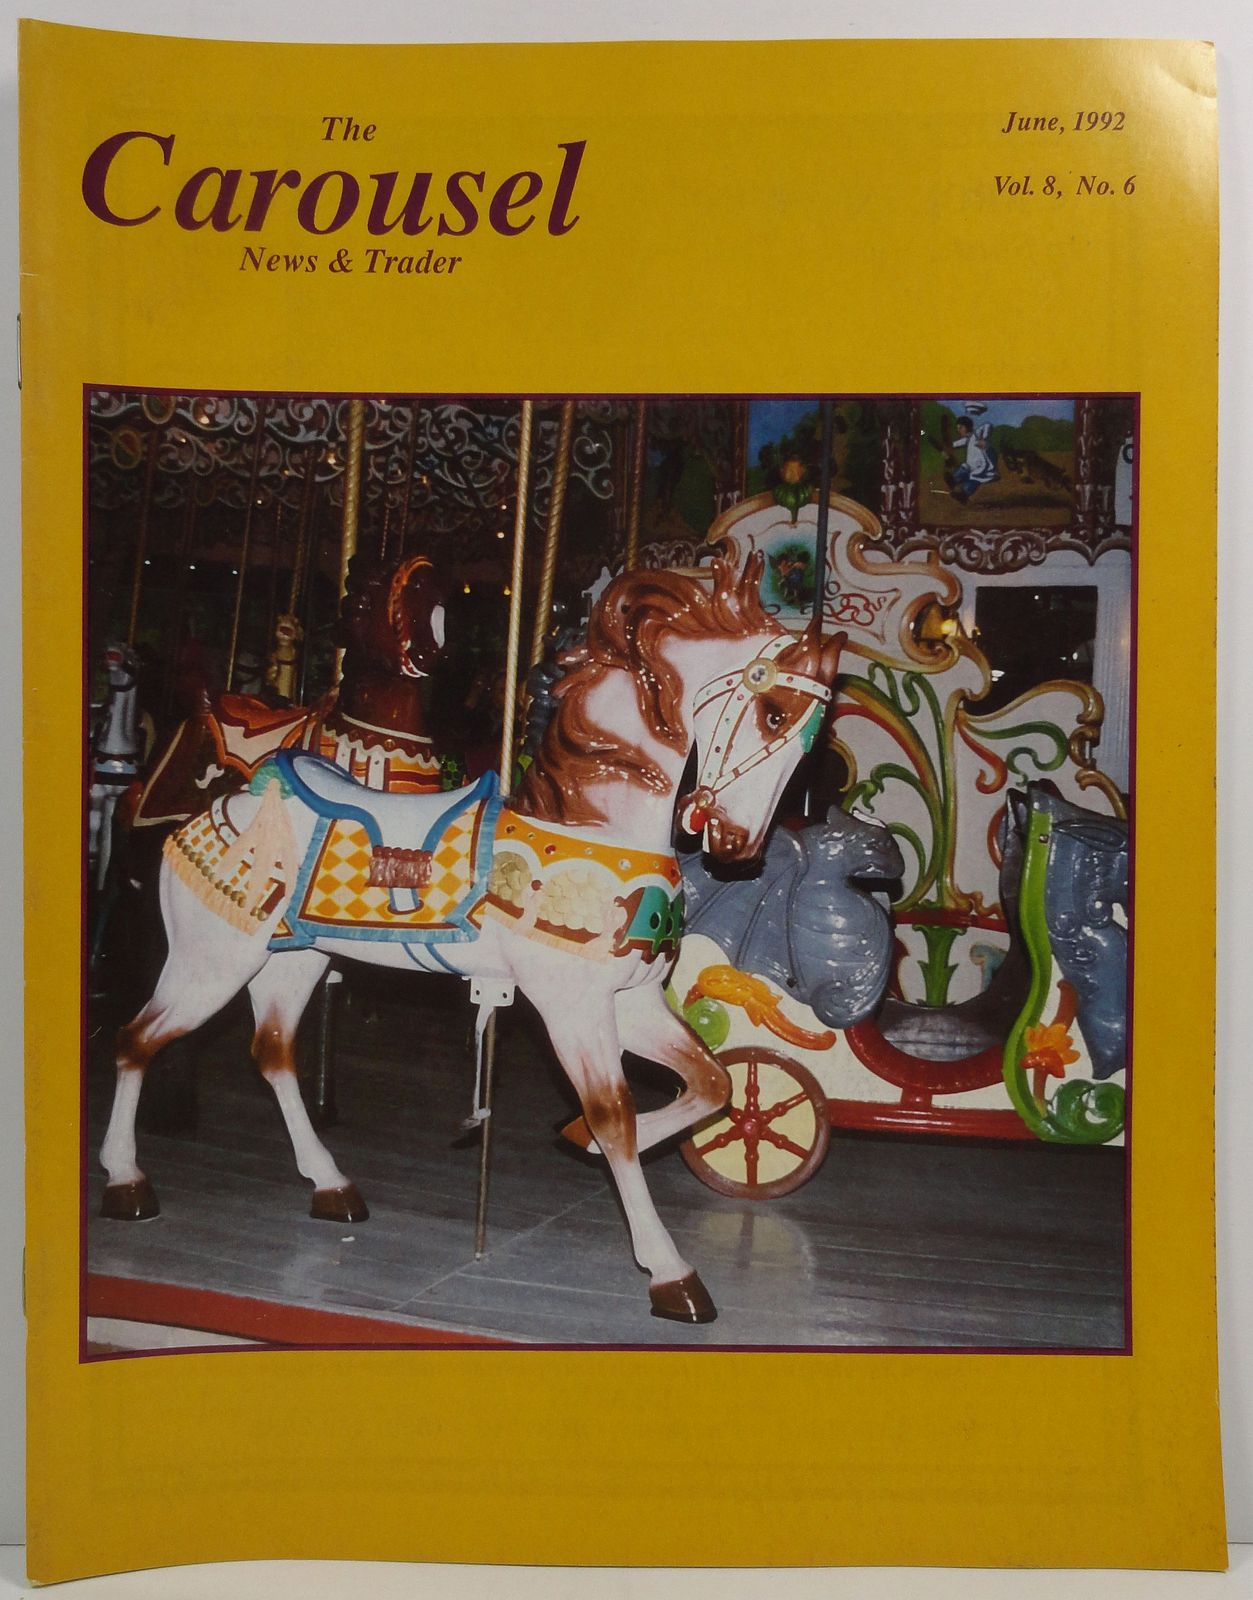 Primary image for The Carousel News and Trader June 1992